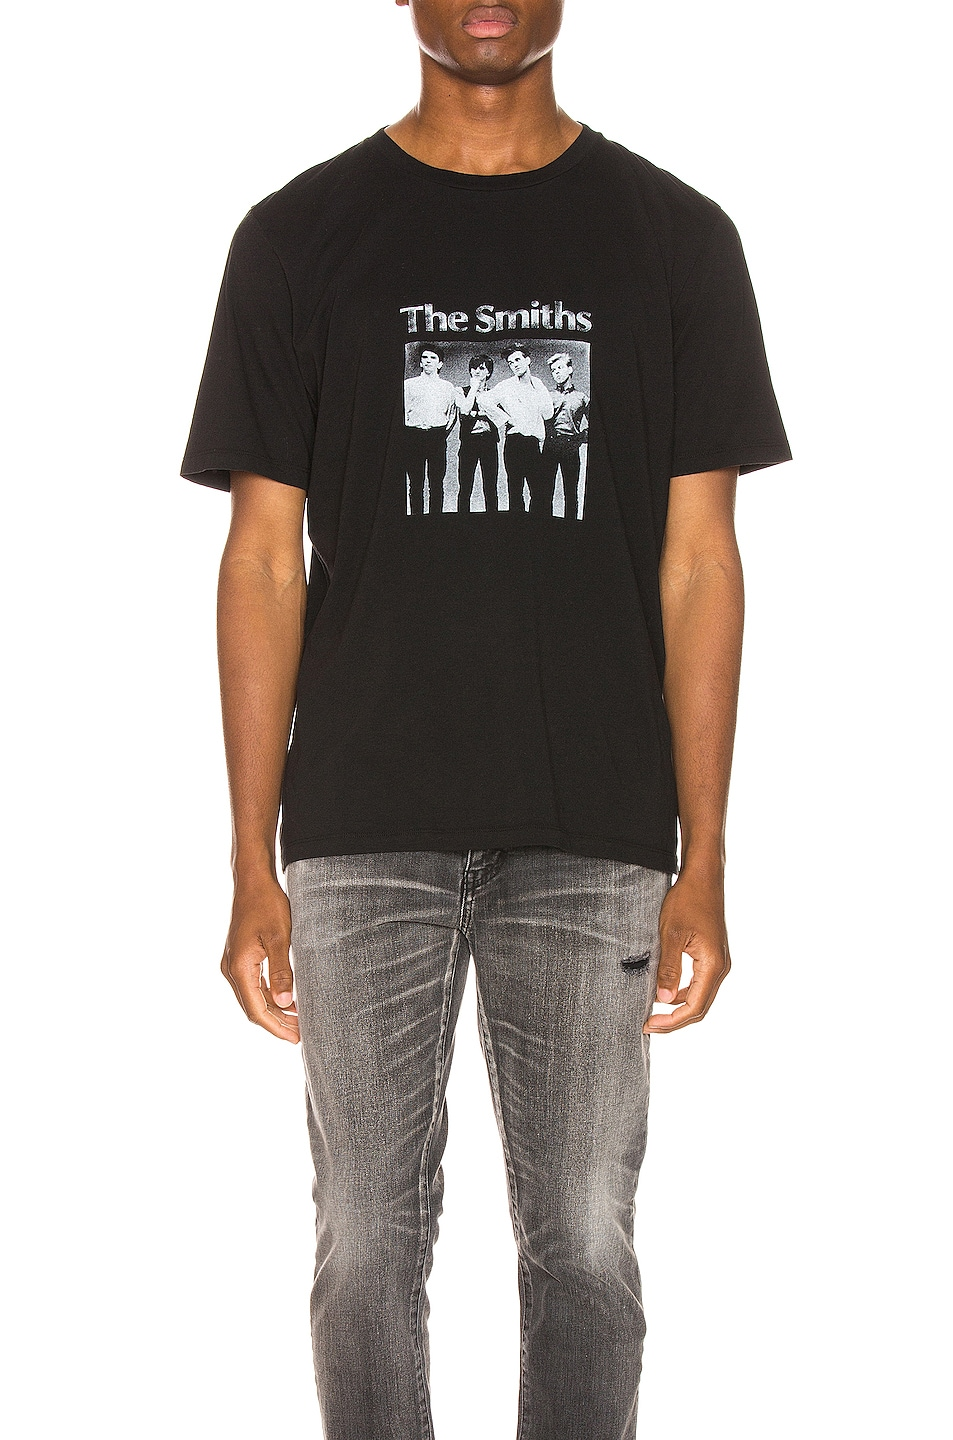 Image 1 of Saint Laurent The Smiths Tee in Black & Natural